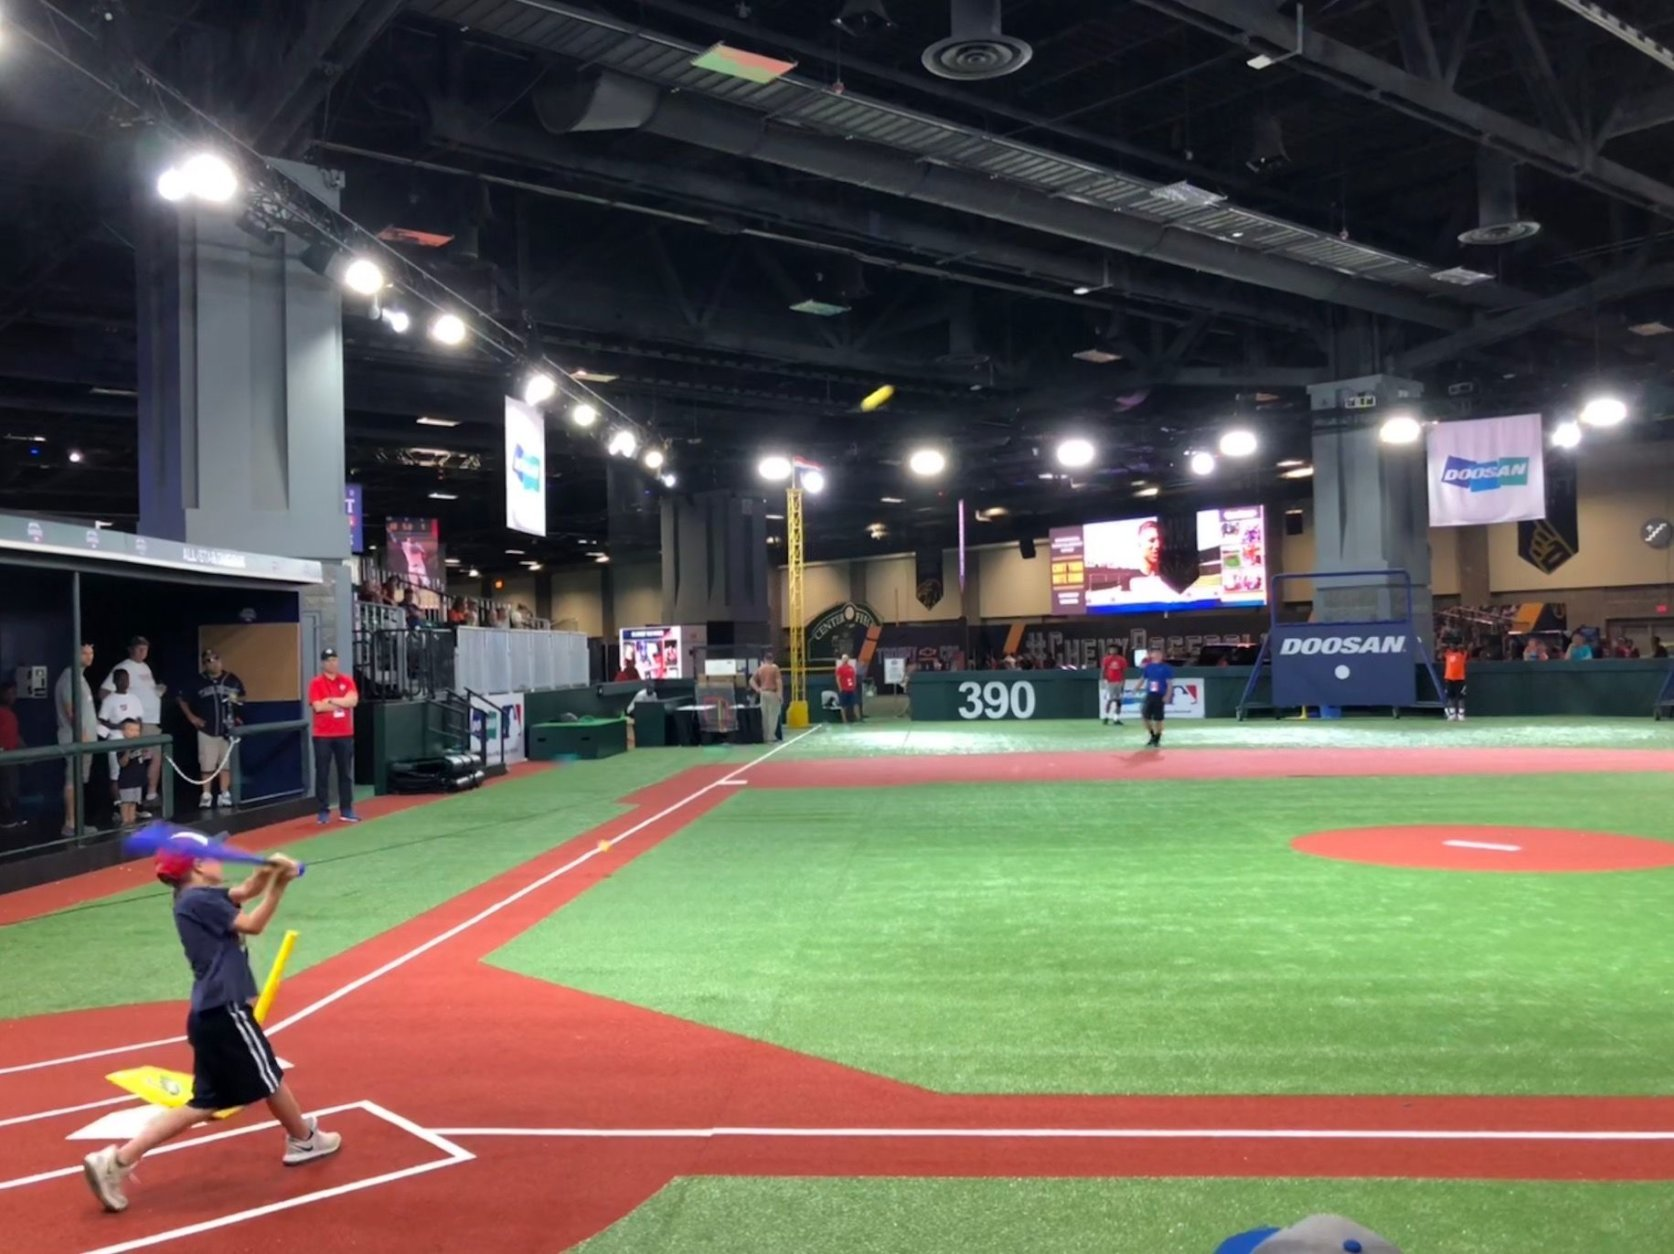 There are indoor baseball diamonds for kids, as well as batting cages and virtual reality baseball experiences. (WTOP/John Aaron)